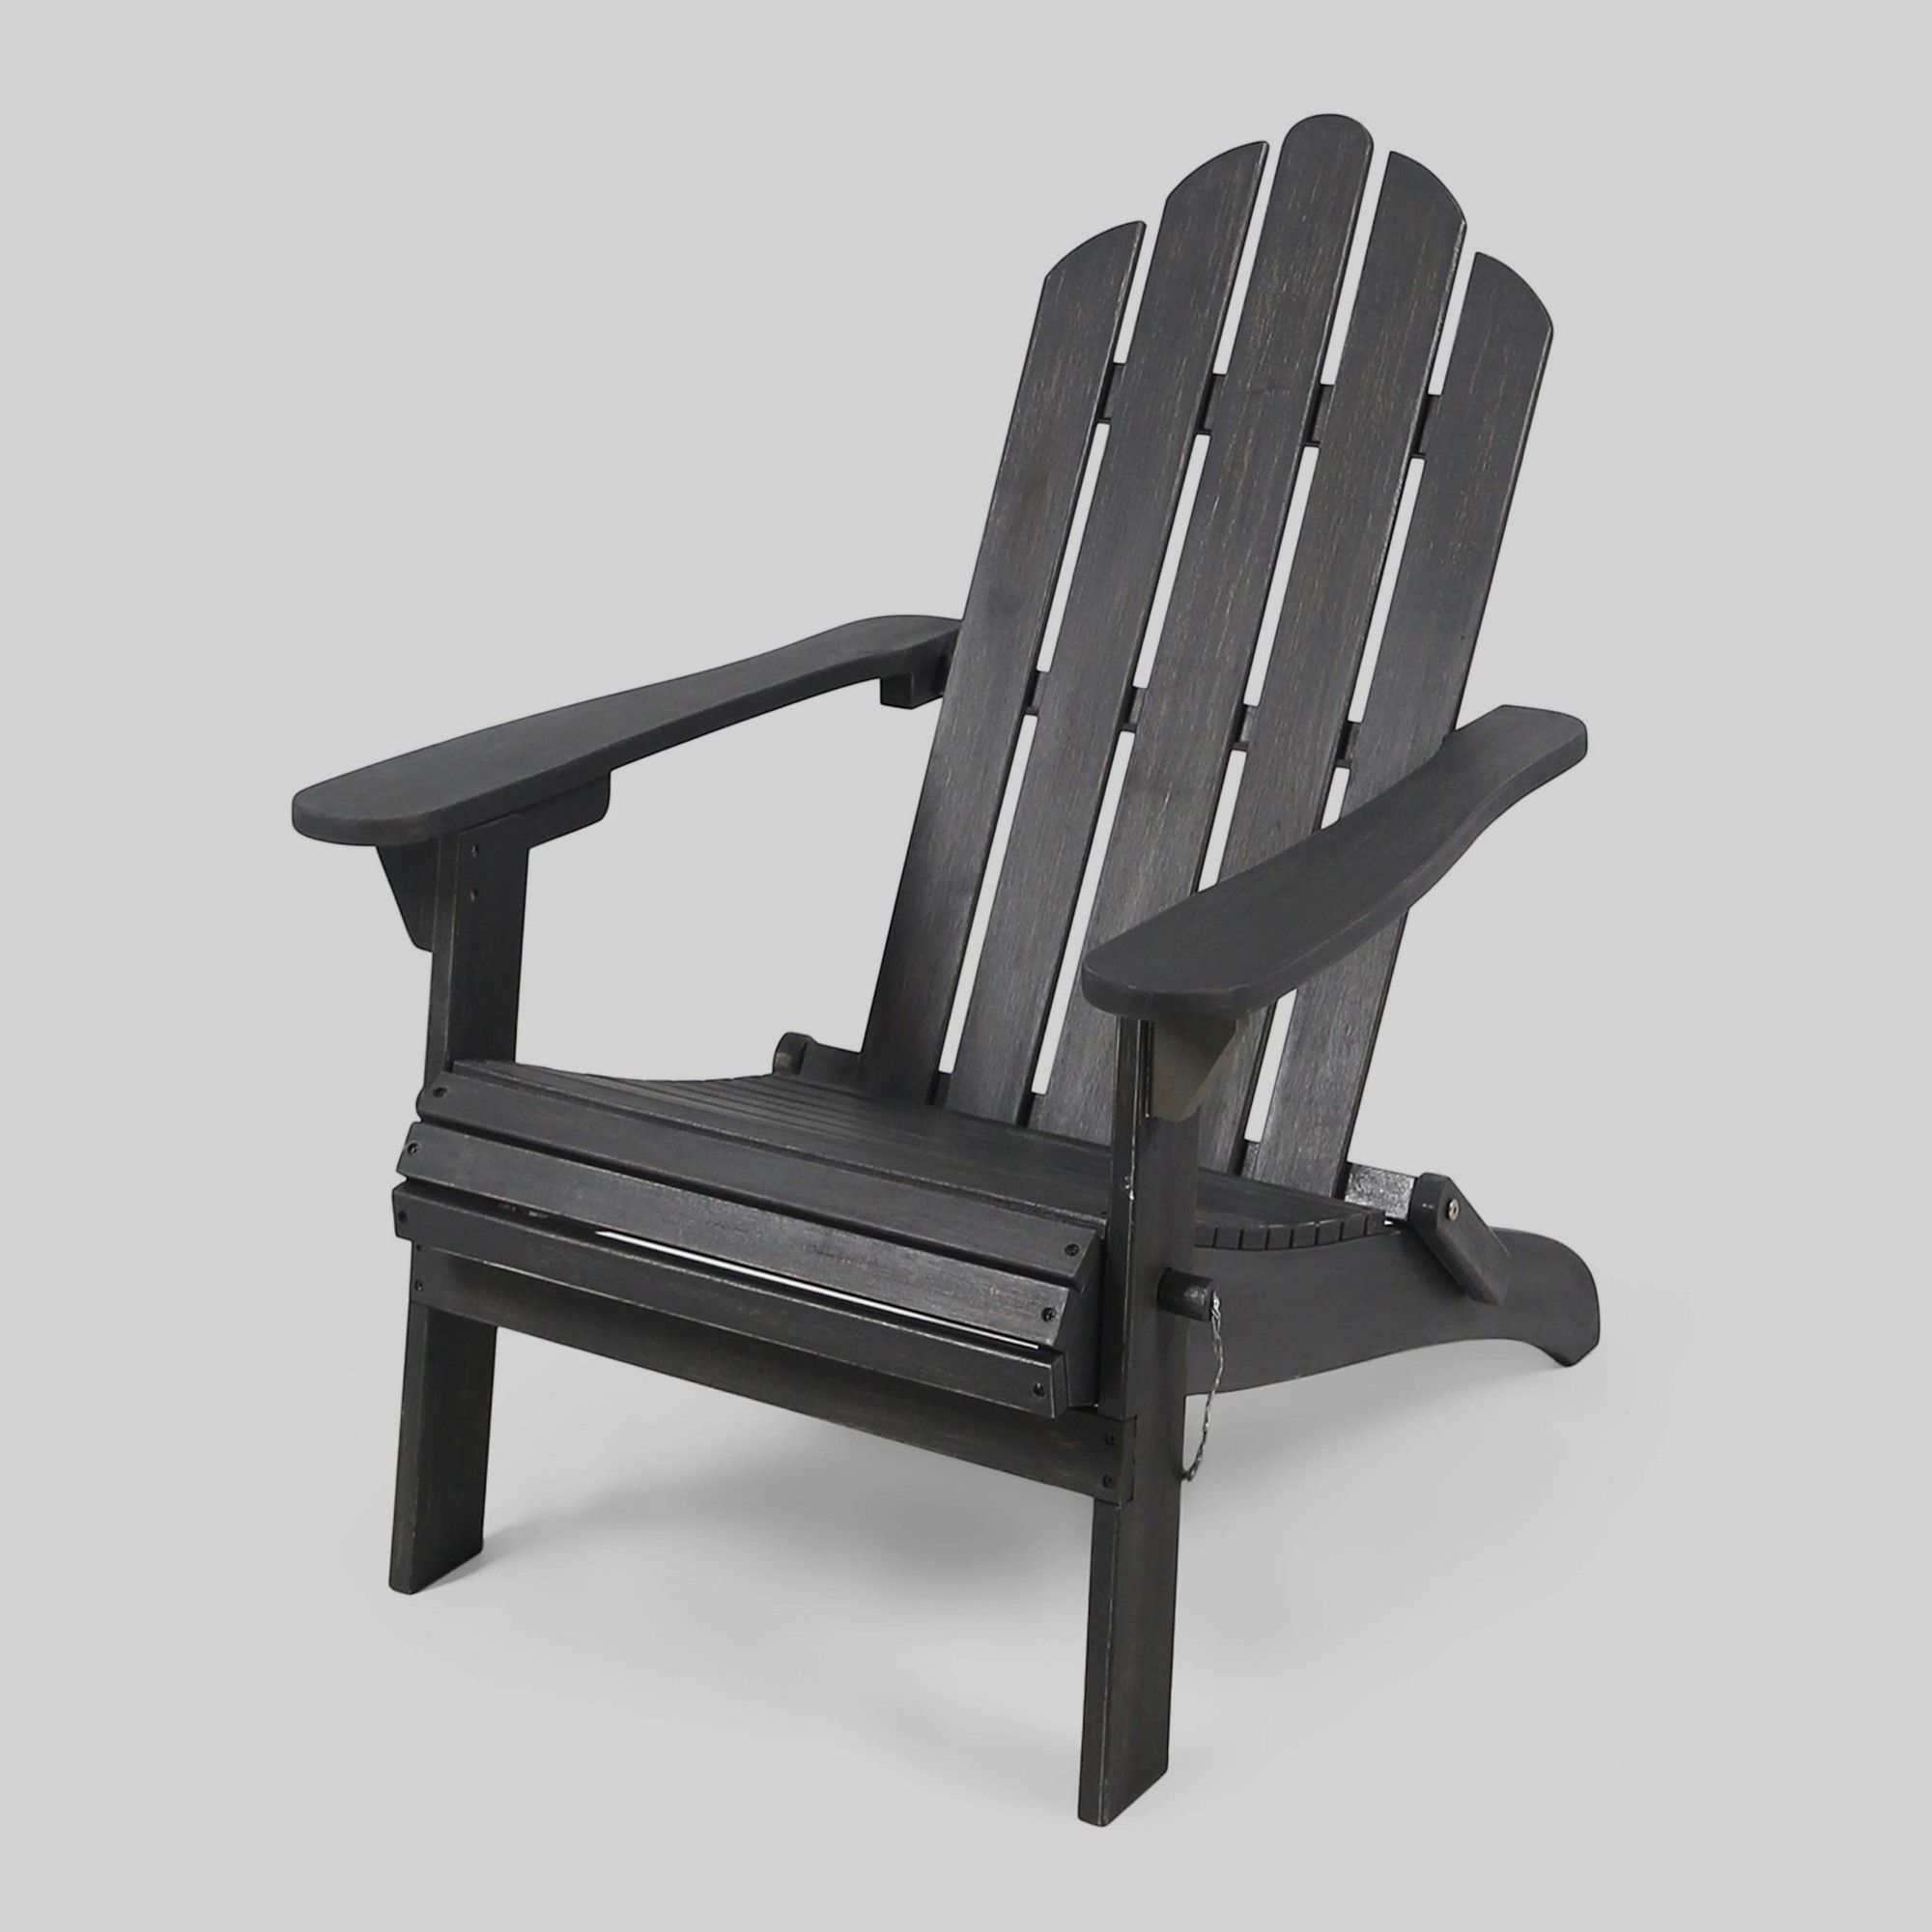 Hollywood Acacia Wood Foldable Patio Adirondack Chair Dark Gray